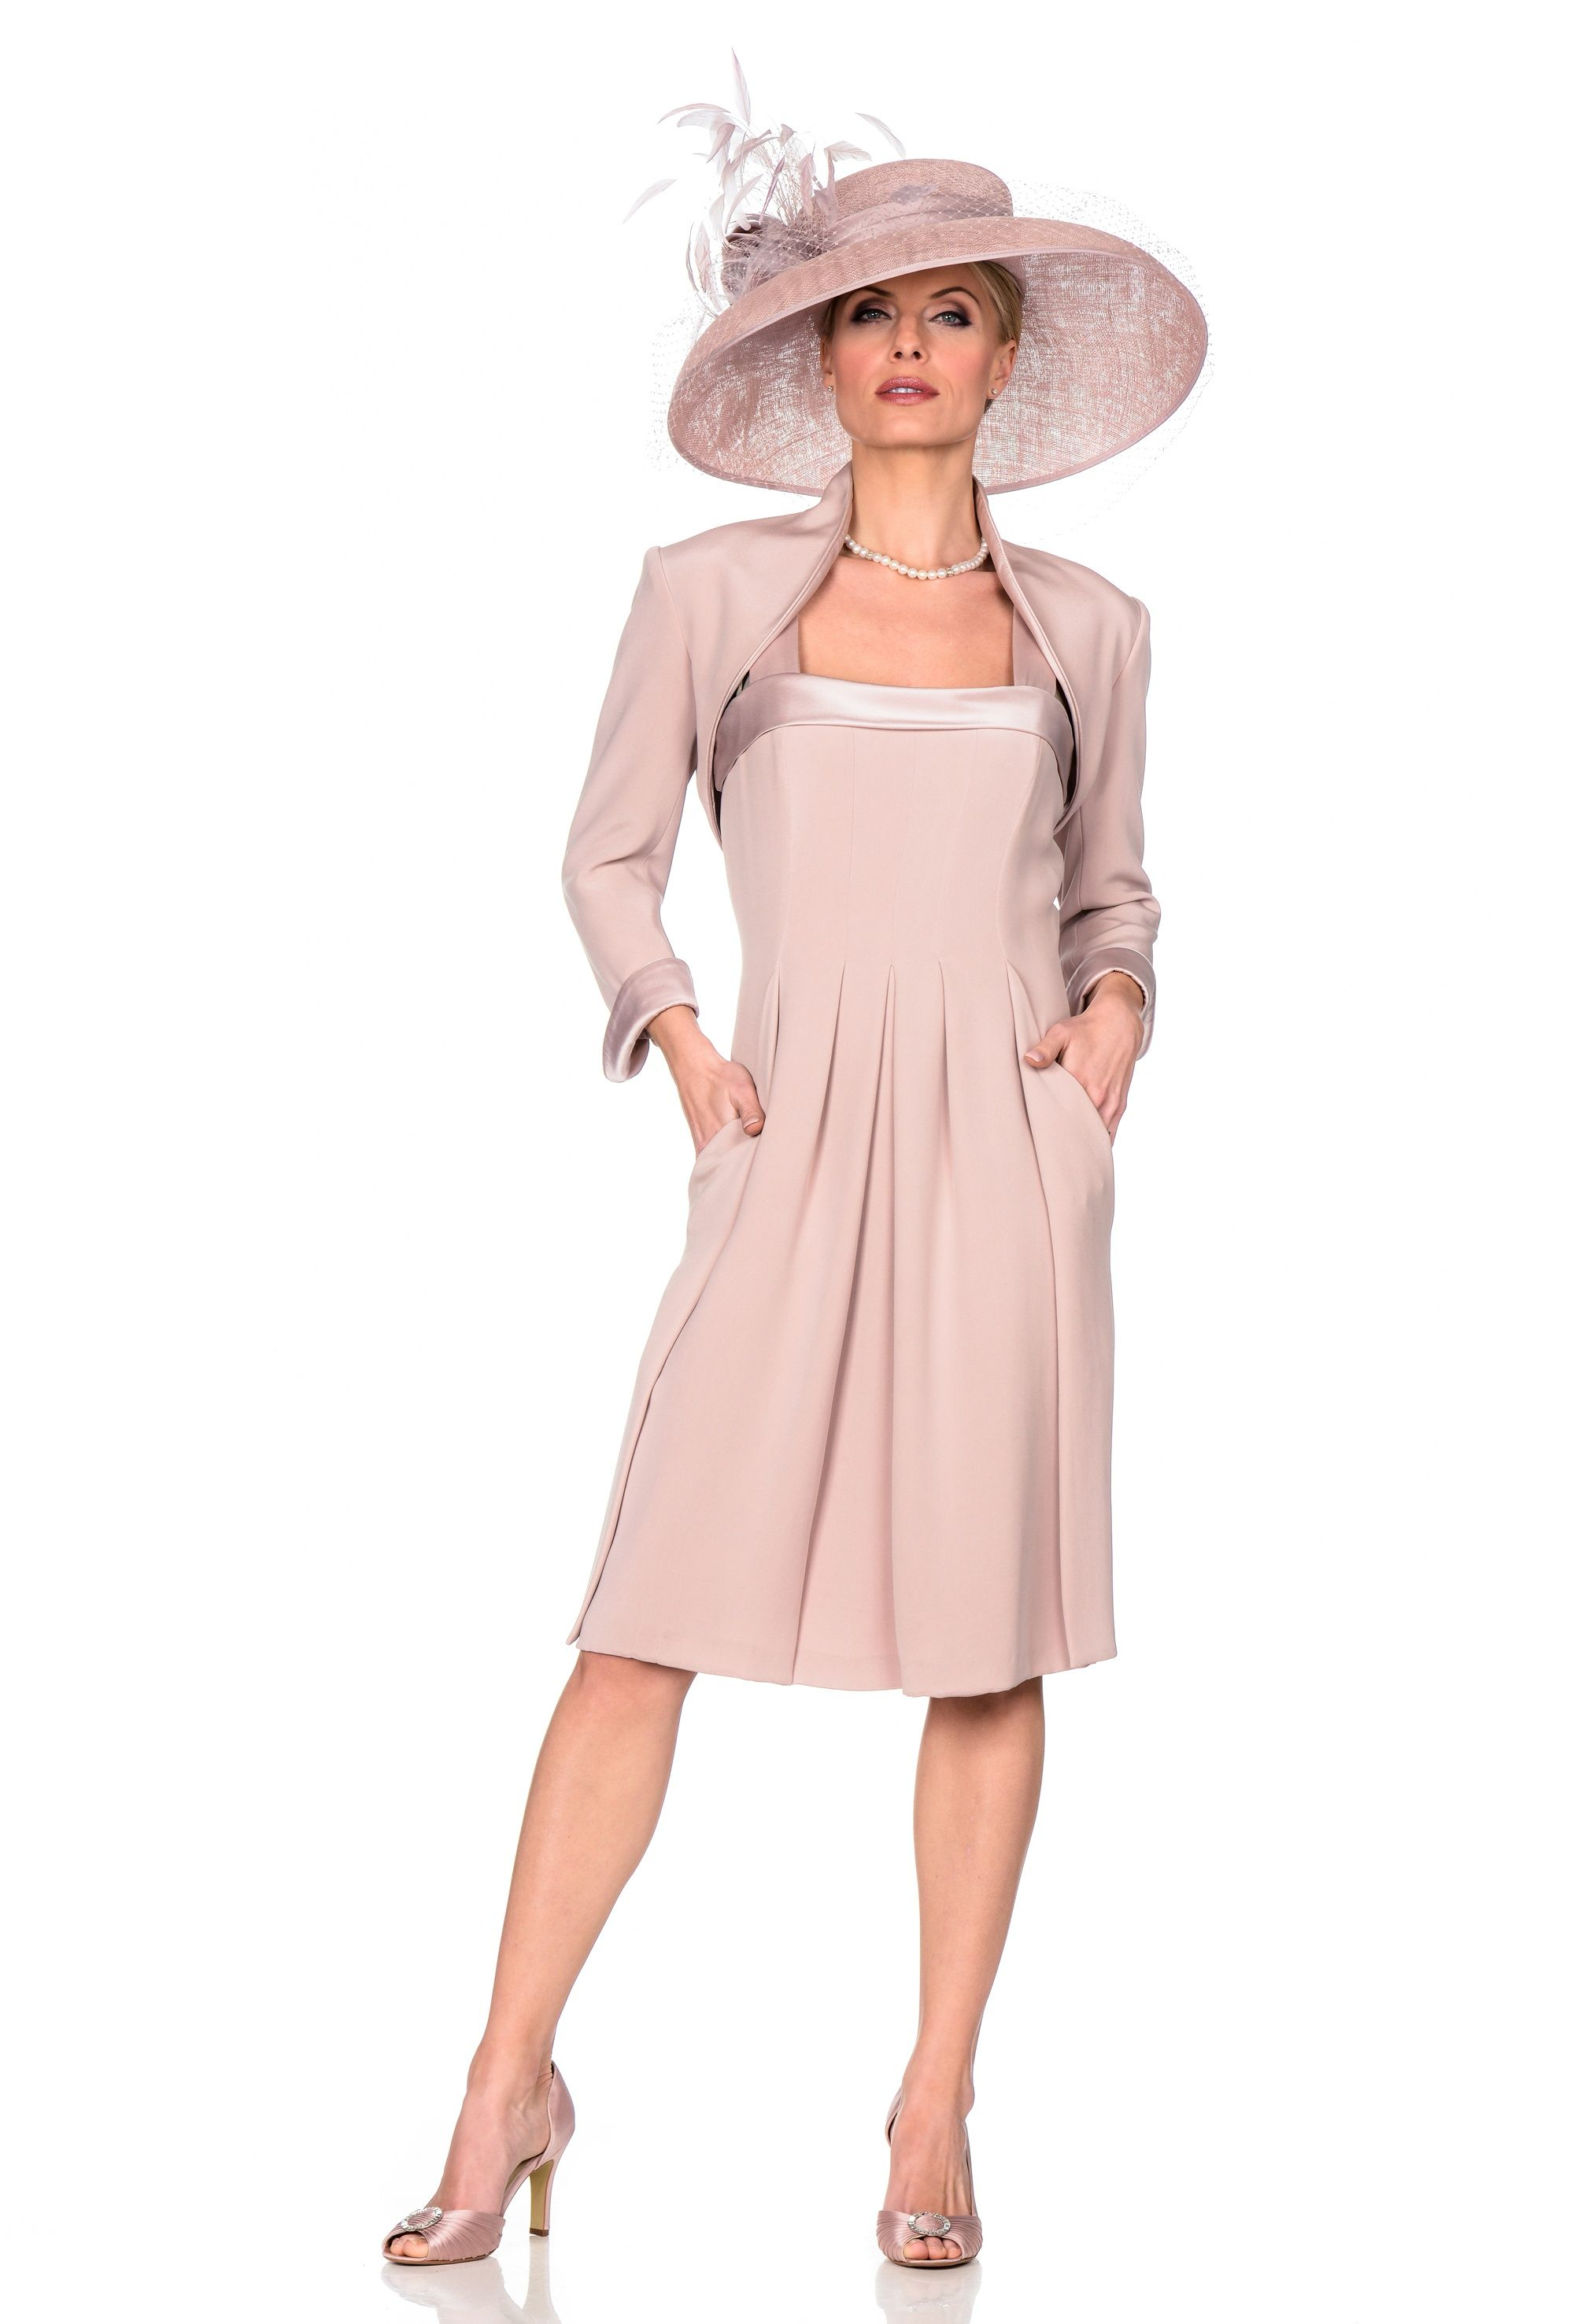 dress with jackets for special occasions  dress  bolero